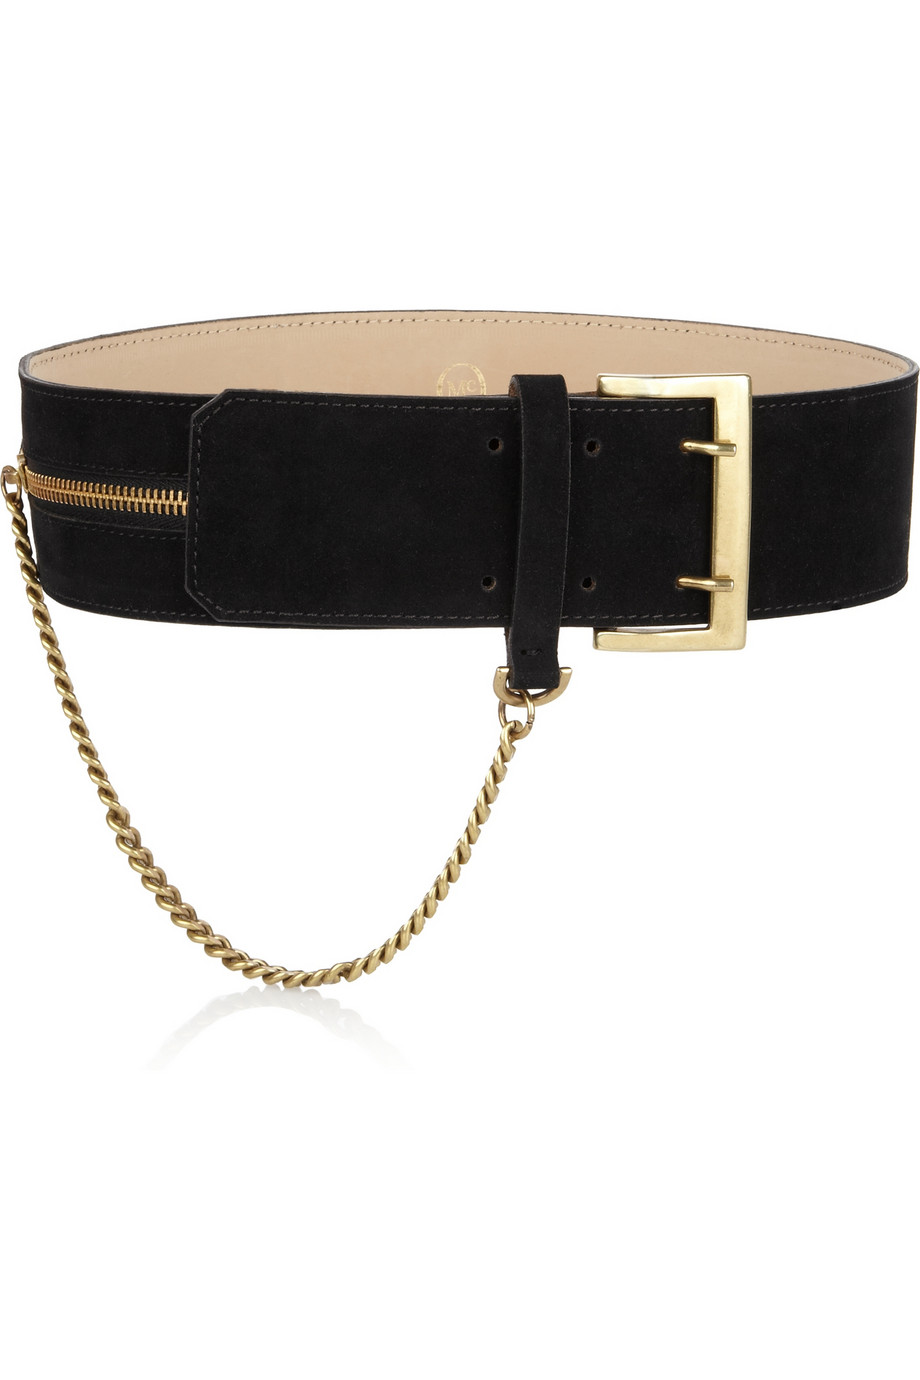 McQ Alexander McQueen  Chain and velvet waist belt $305